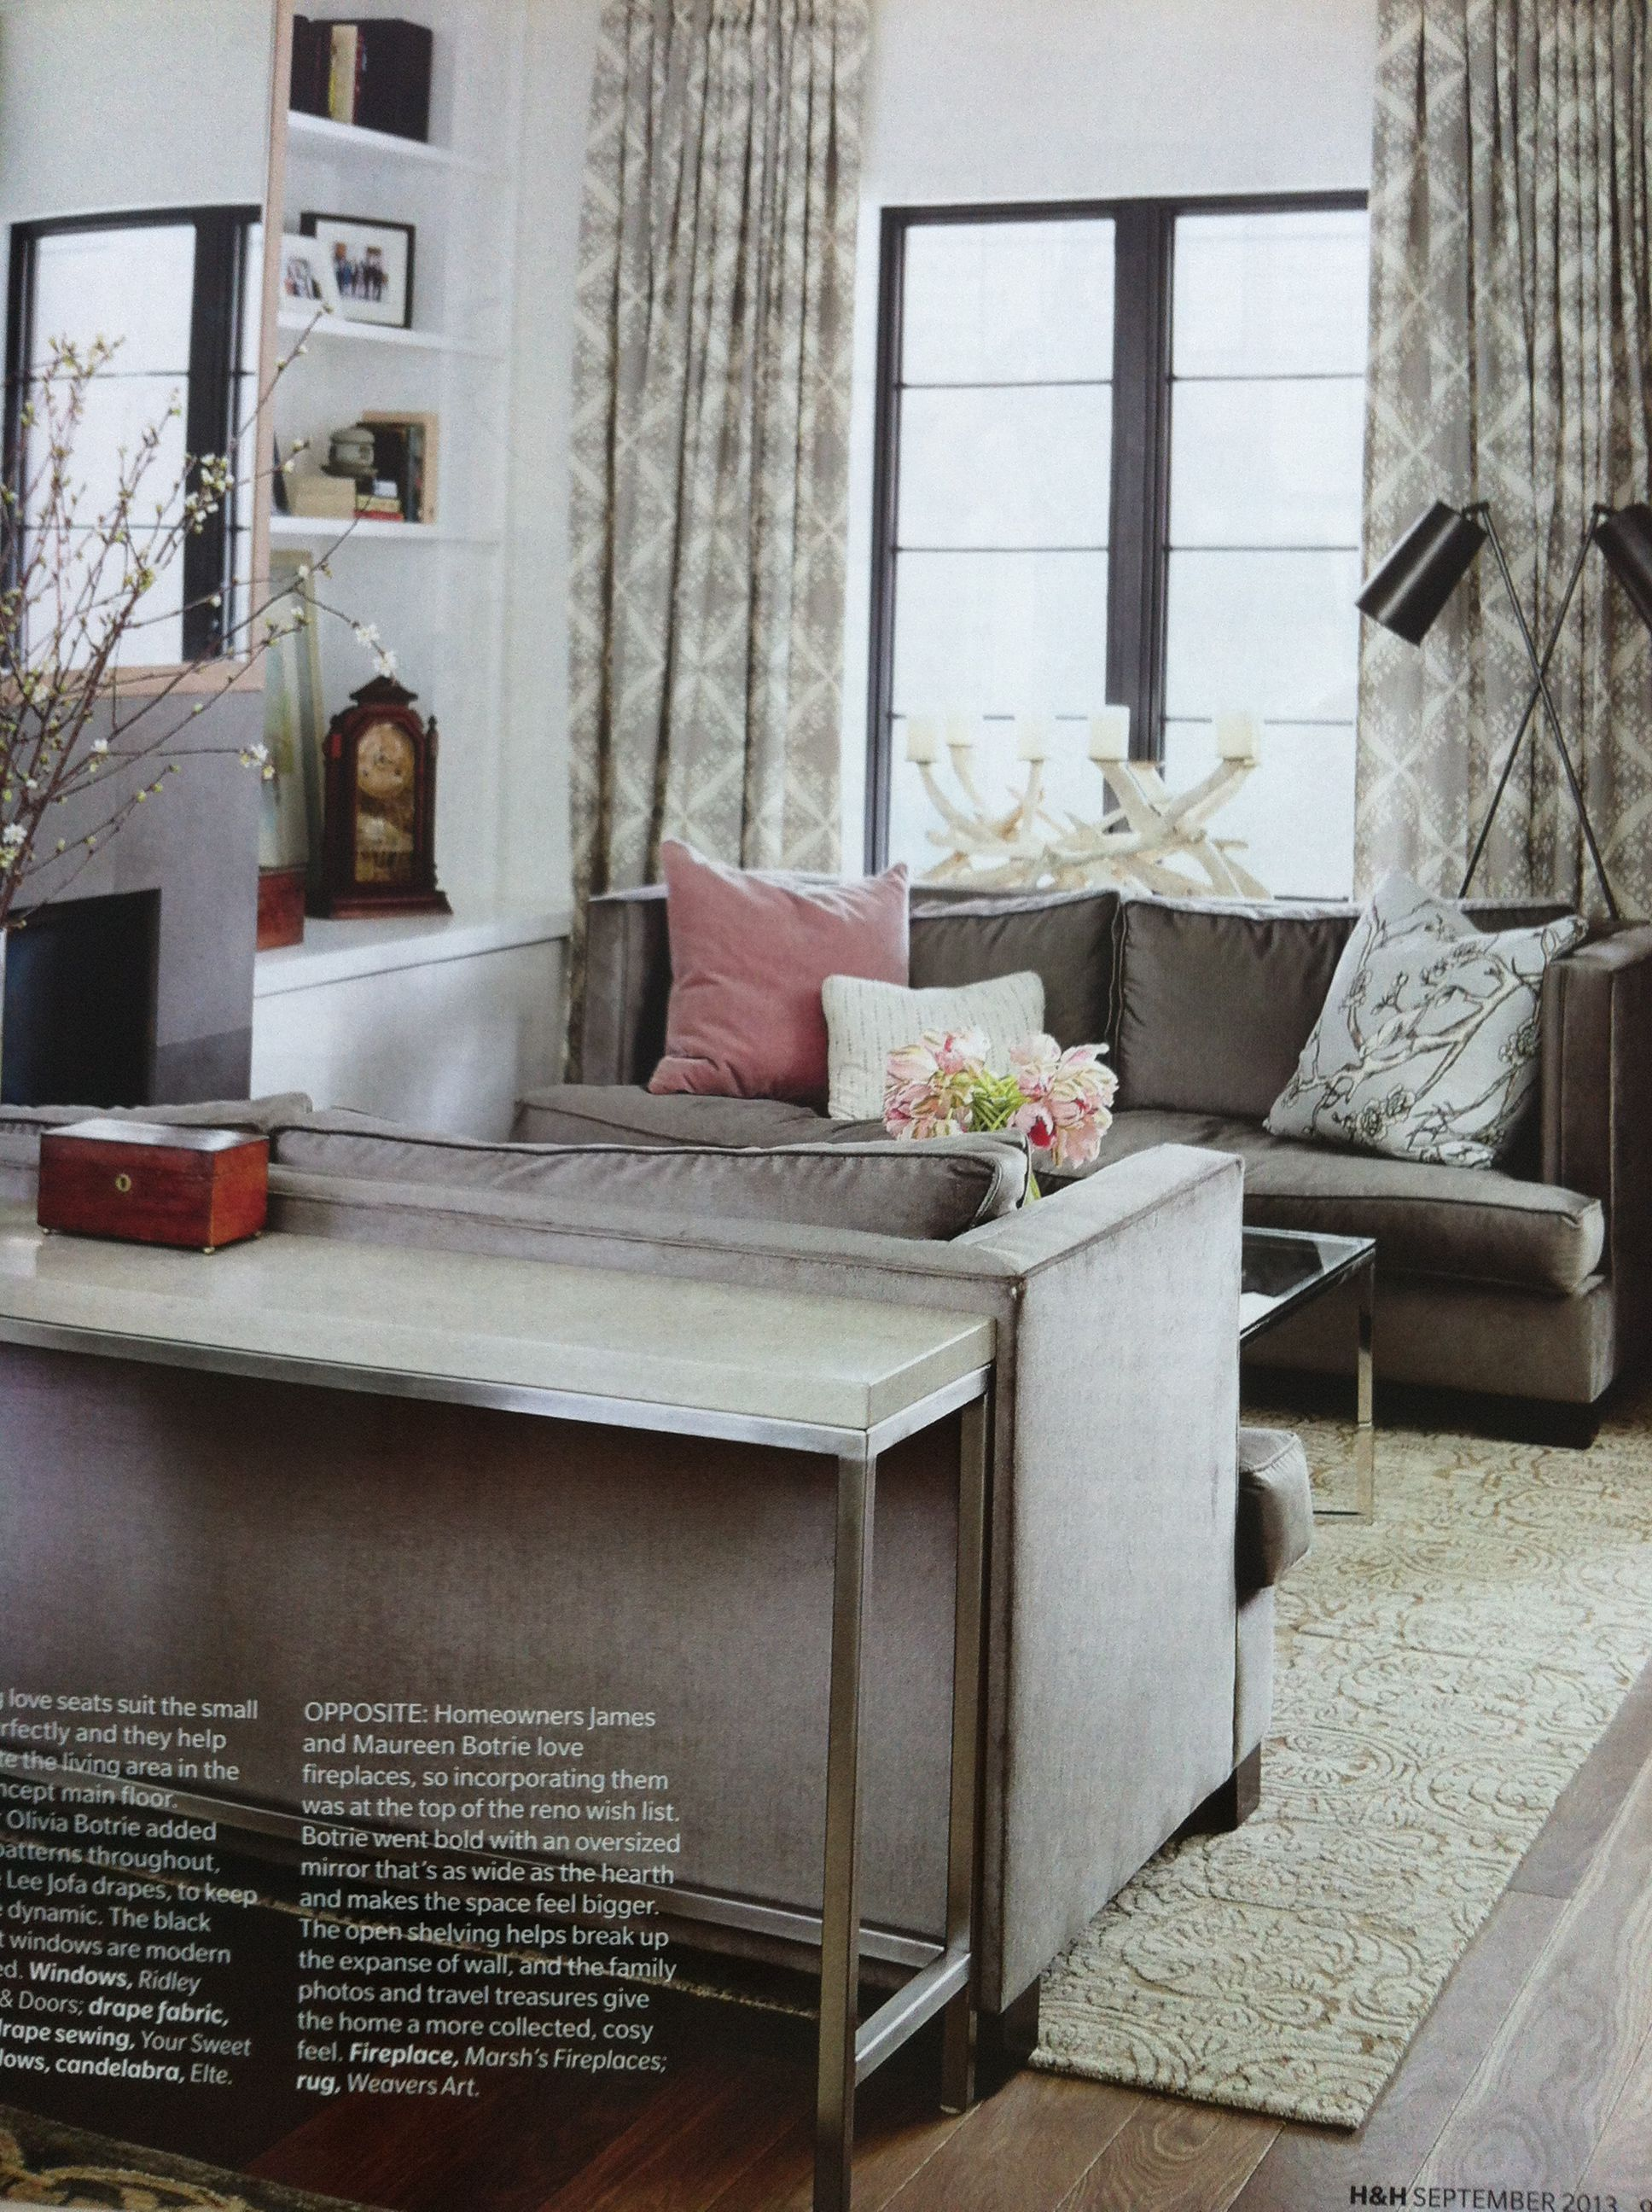 Living room layout- especially like console table and curtains